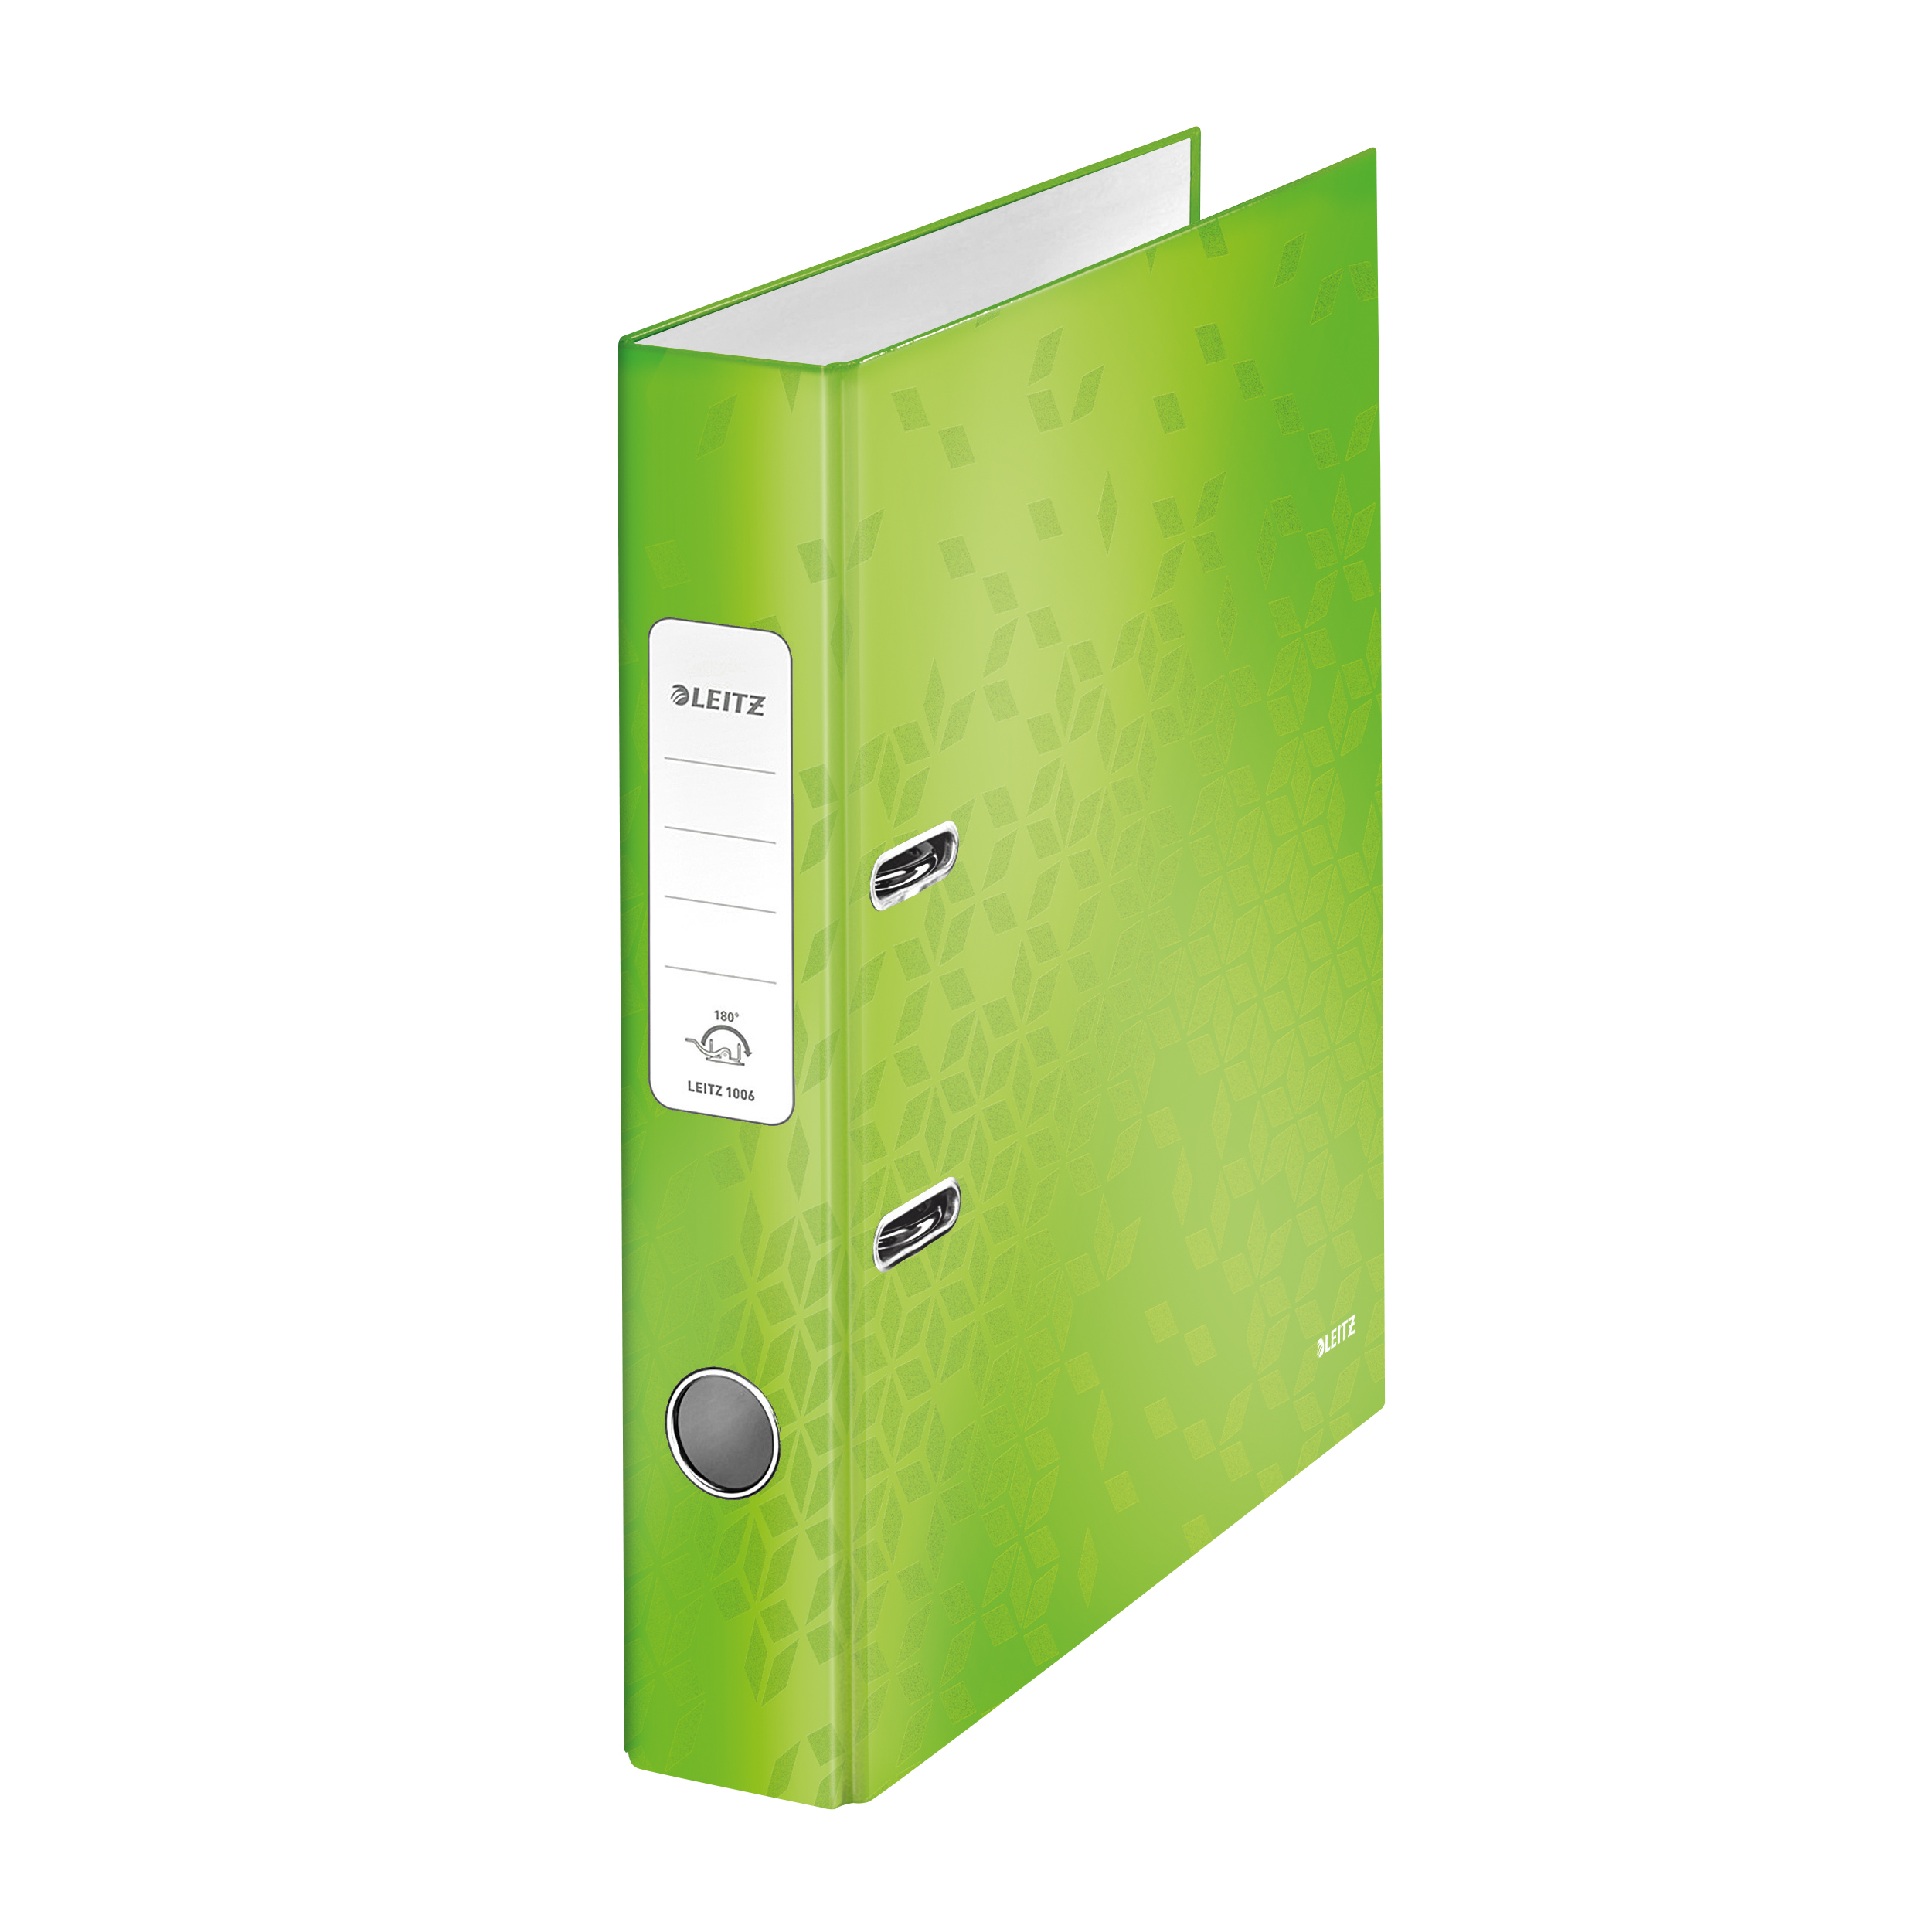 Lever Arch Files Leitz WOW Lever Arch File 80mm Spine for 600 Sheets A4 Green Ref 10050054 Pack 10REDEMPTION Apr-Jun20